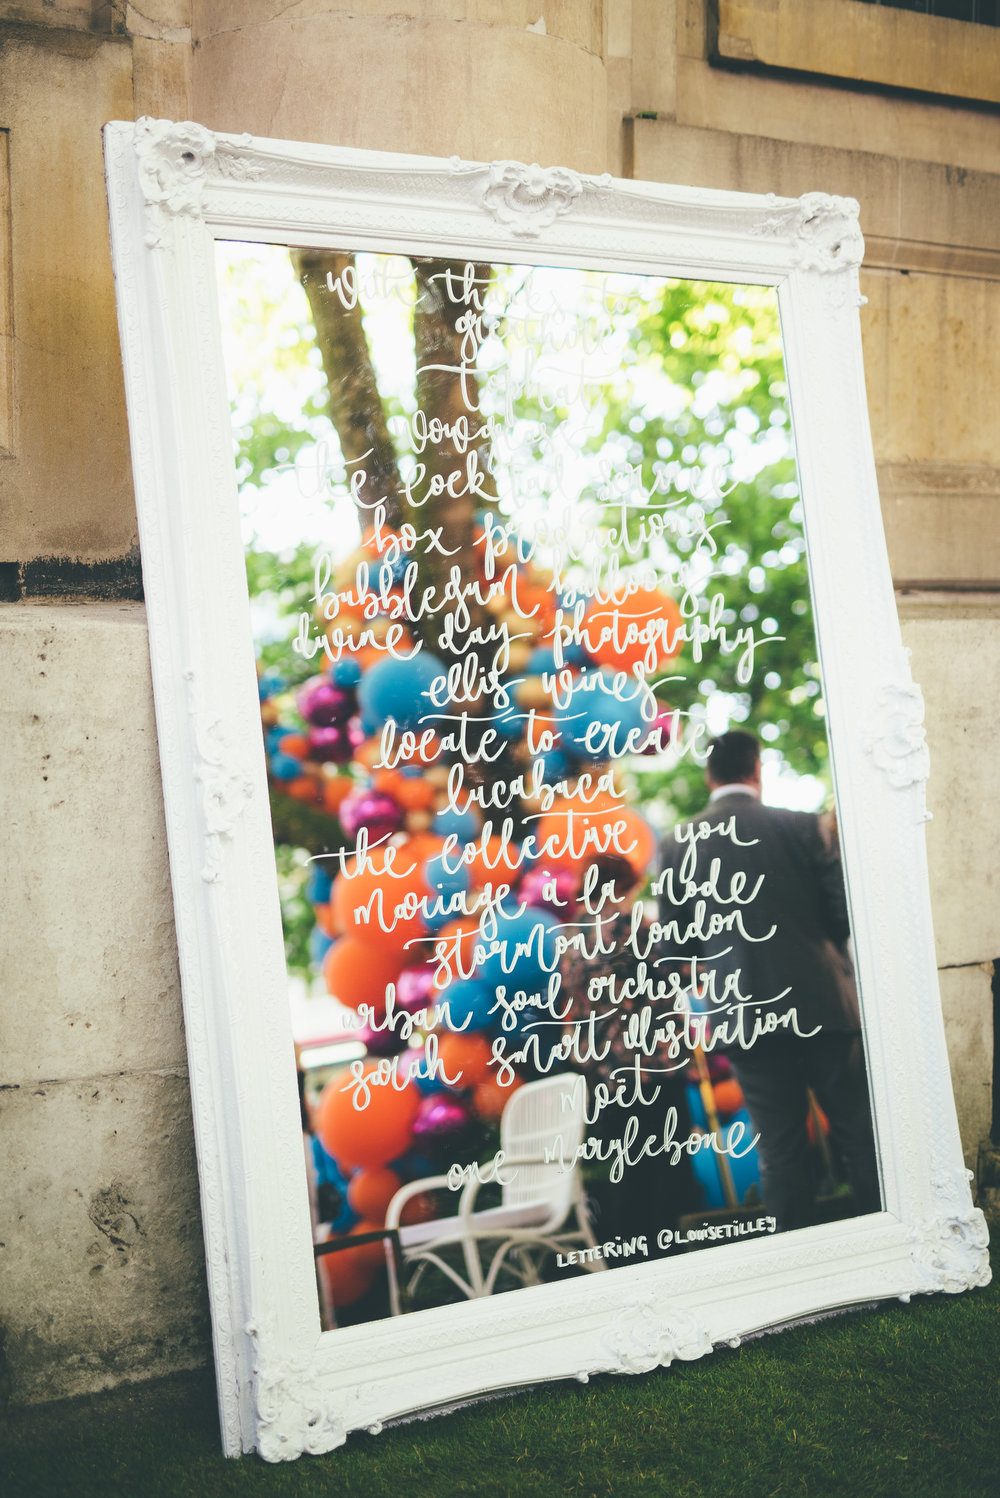 Louie Tilley - The Wedding Gallery Soirée - Lettered Mirror